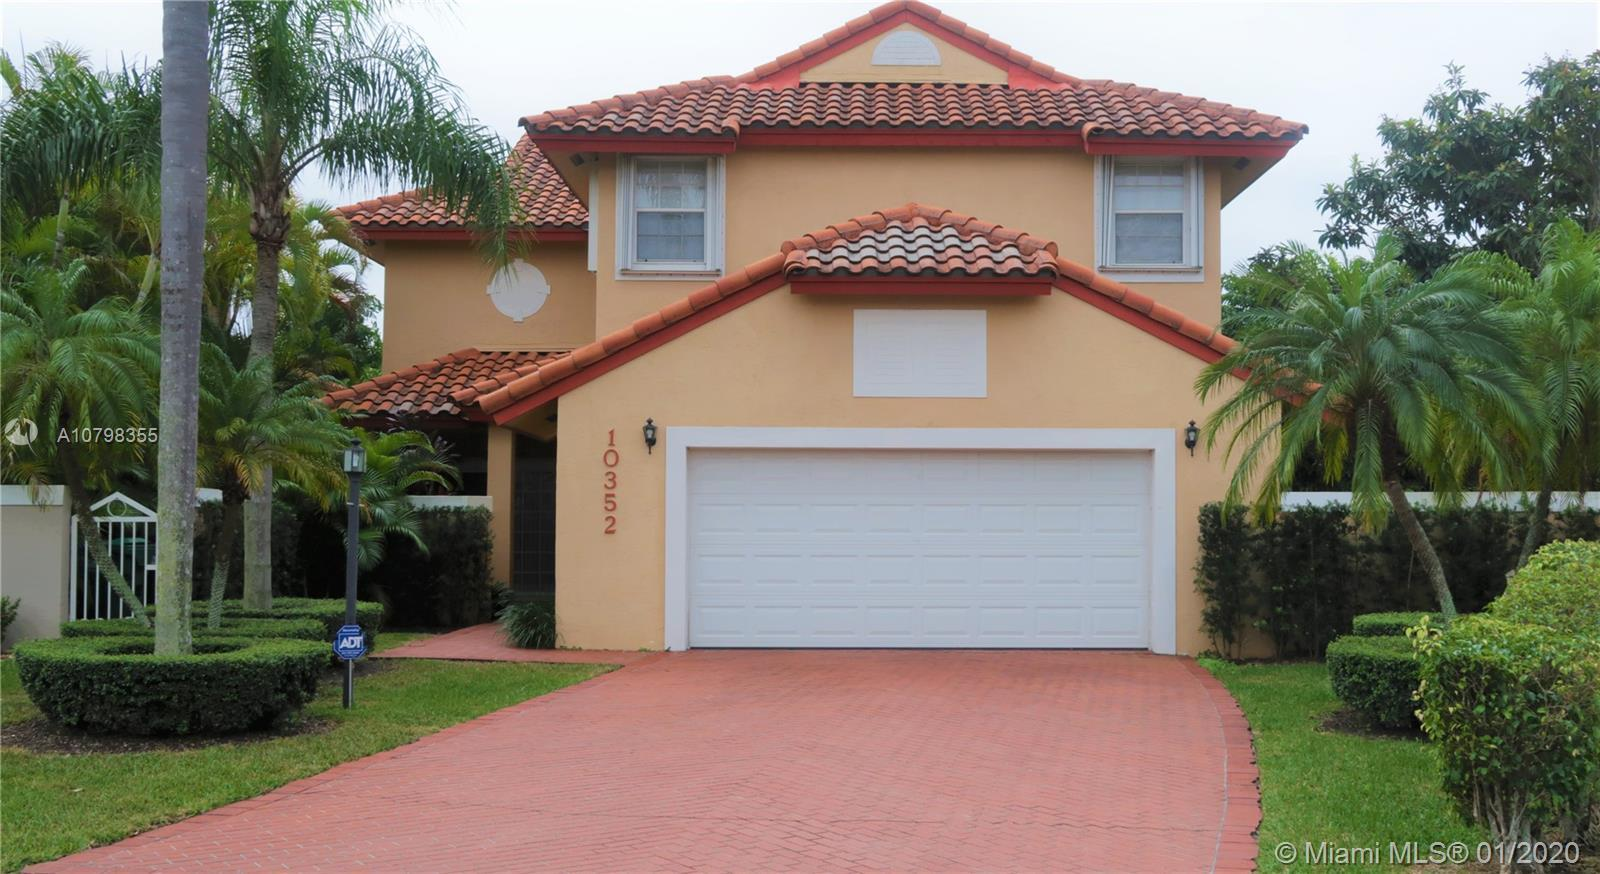 Beautiful property in the prestigious community of Doral Dunes. The interior features 4 bedrooms, 2